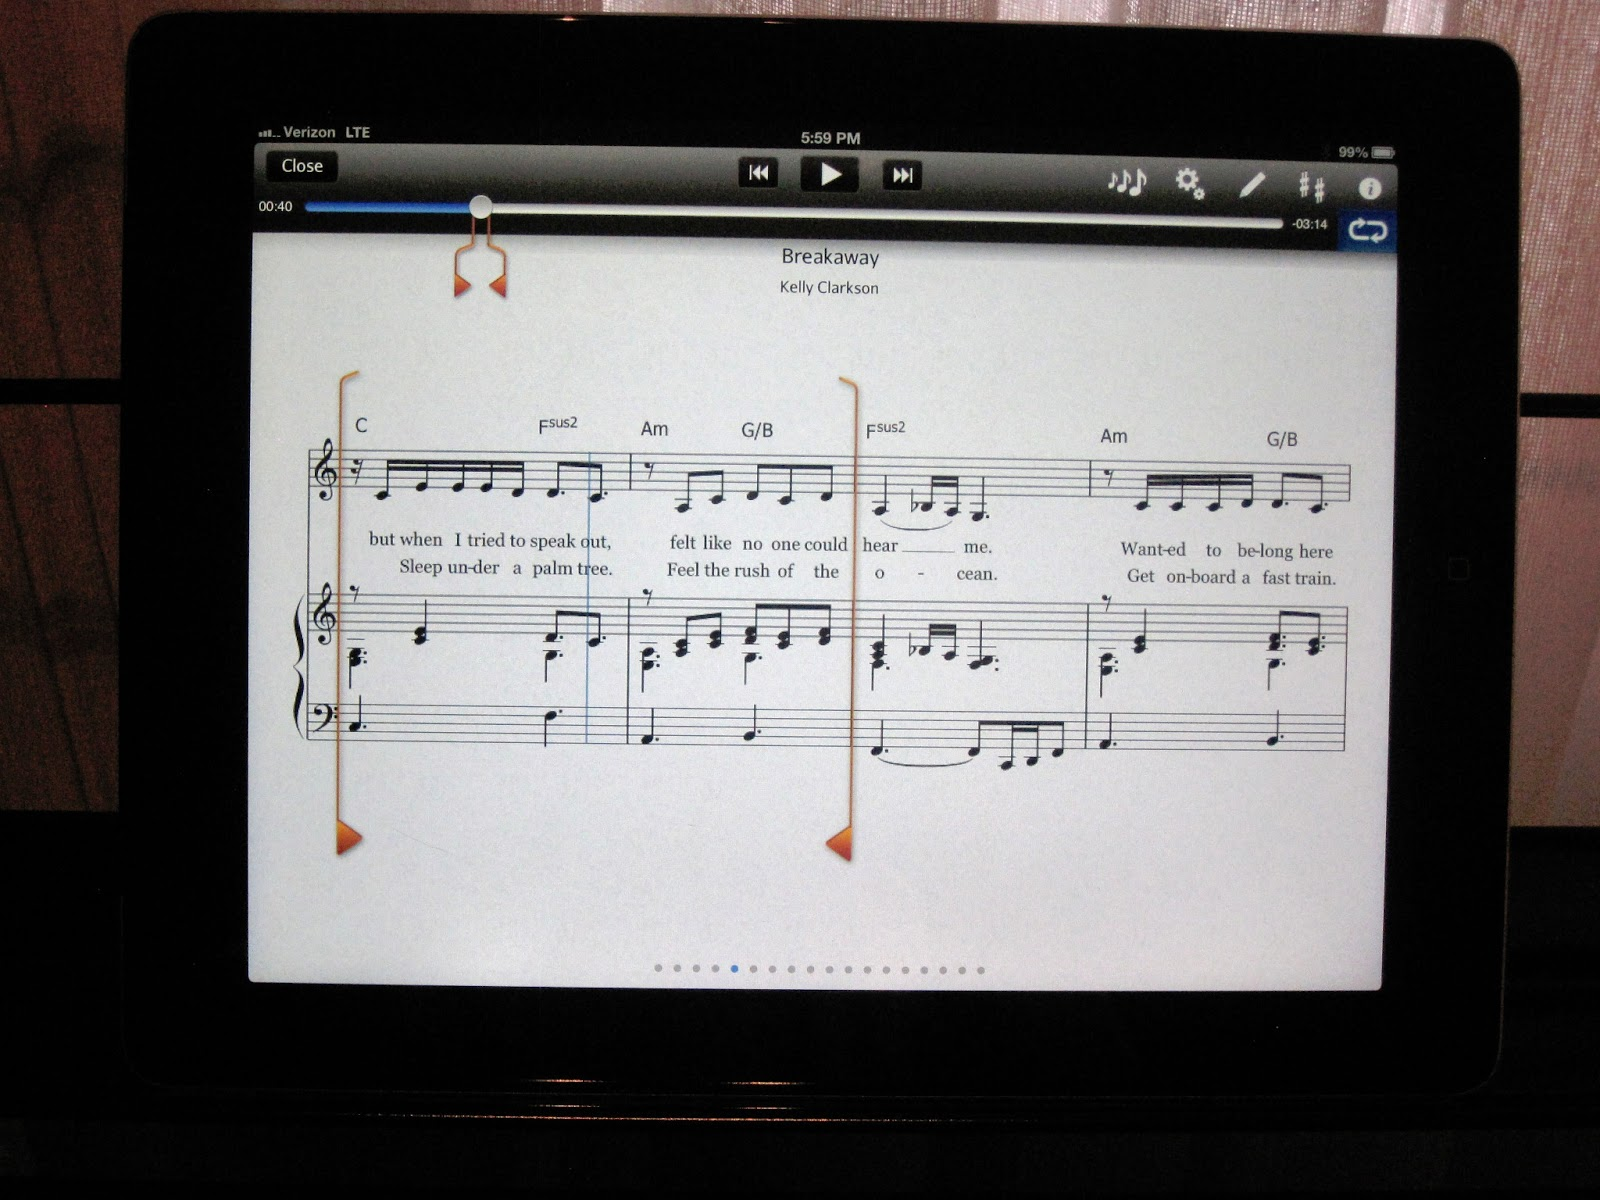 az piano reviews ipad piano apps learn to play piano. Black Bedroom Furniture Sets. Home Design Ideas